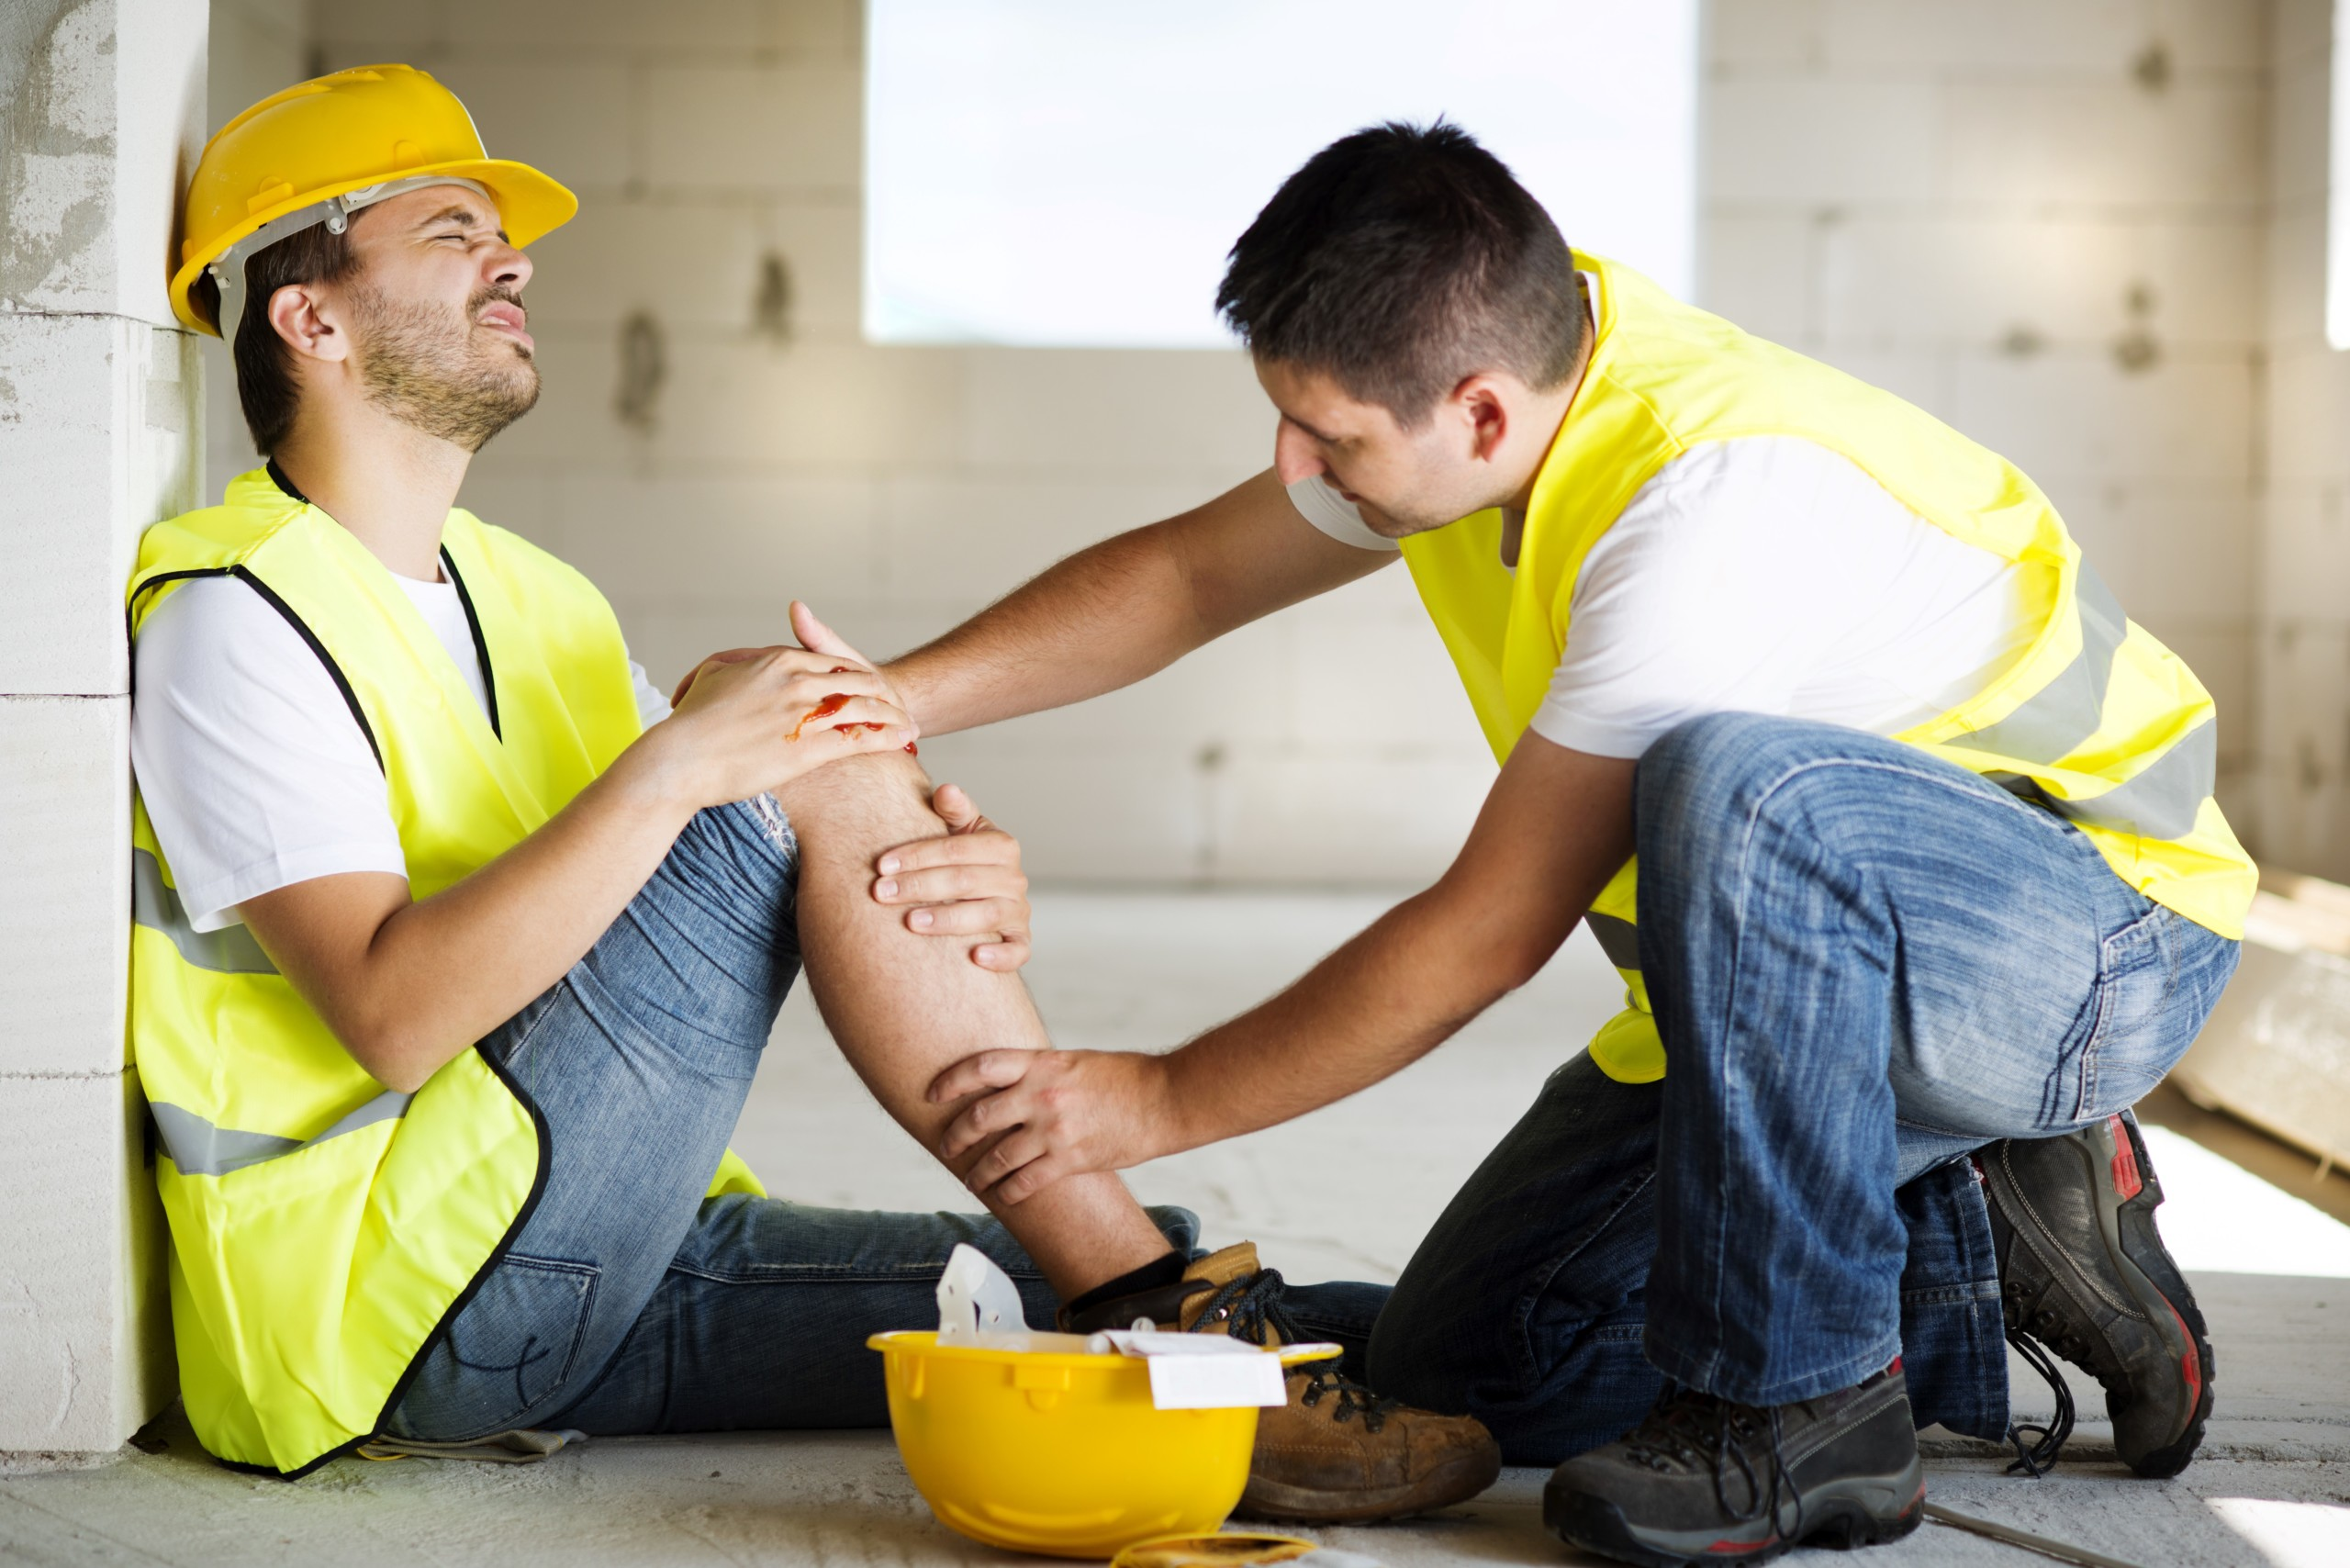 5 Tips for Handling Accidents on the Job